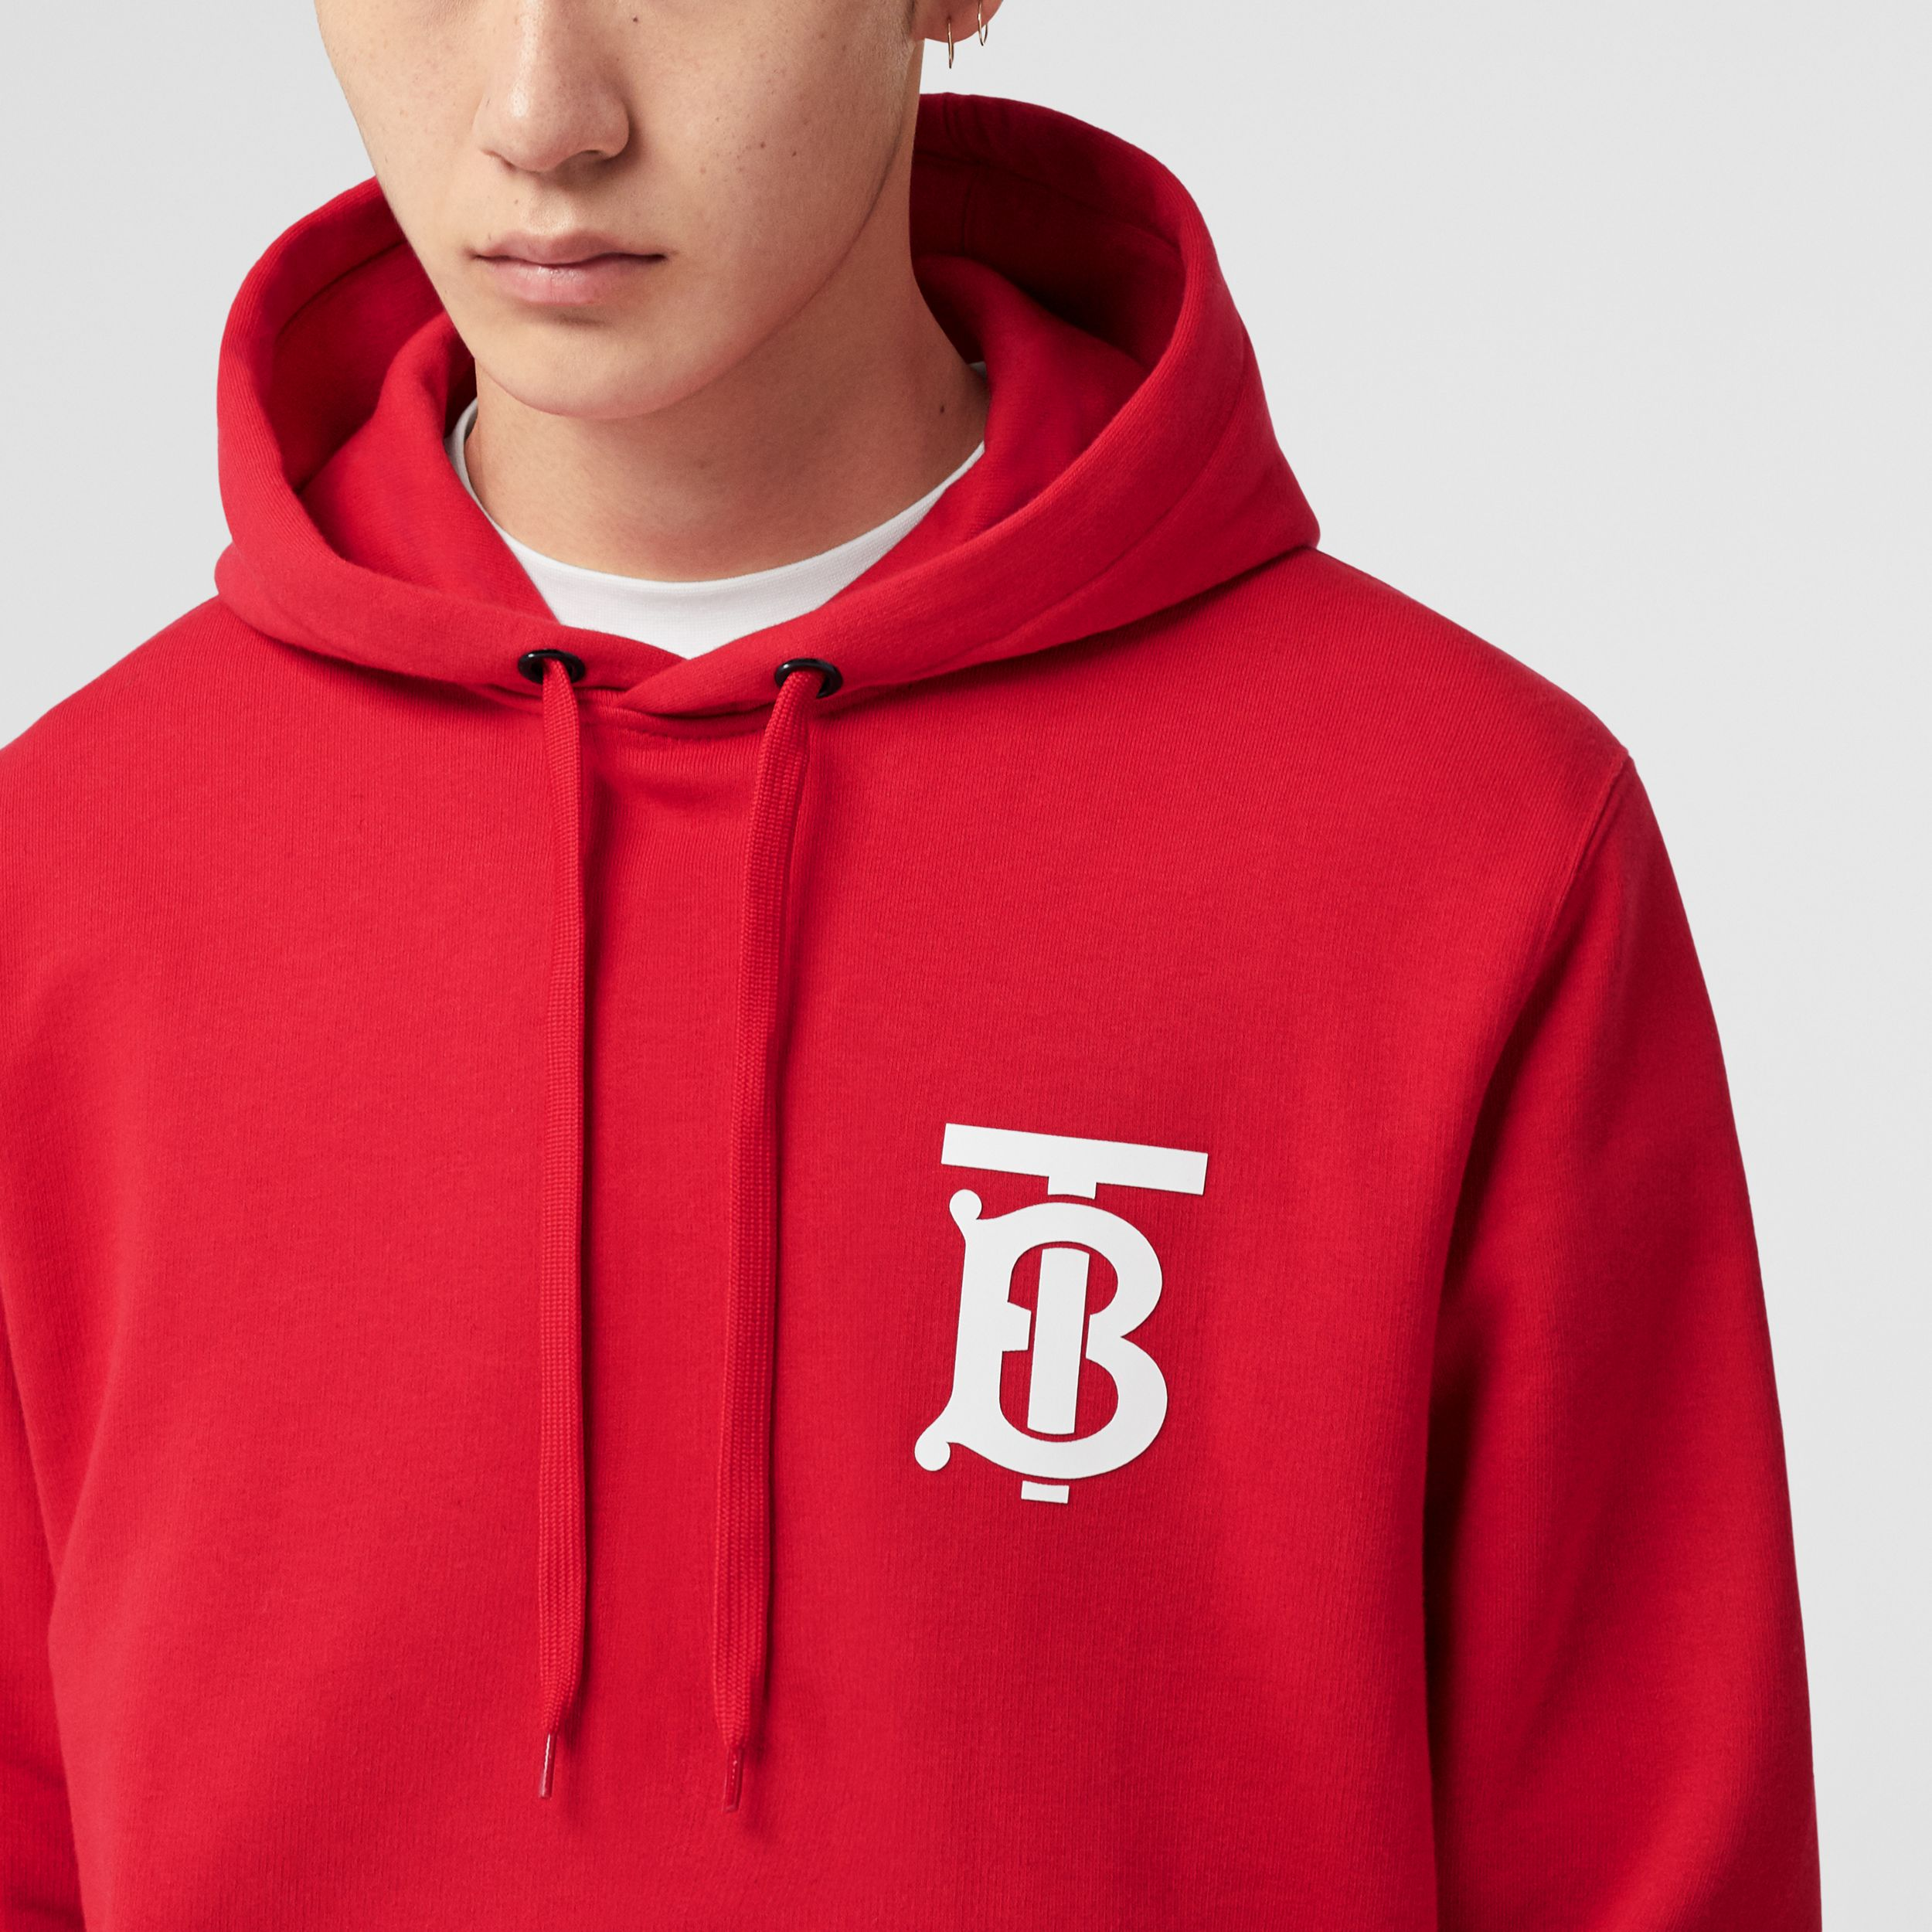 Monogram Motif Cotton Hoodie in Bright Red - Men | Burberry Australia - 2